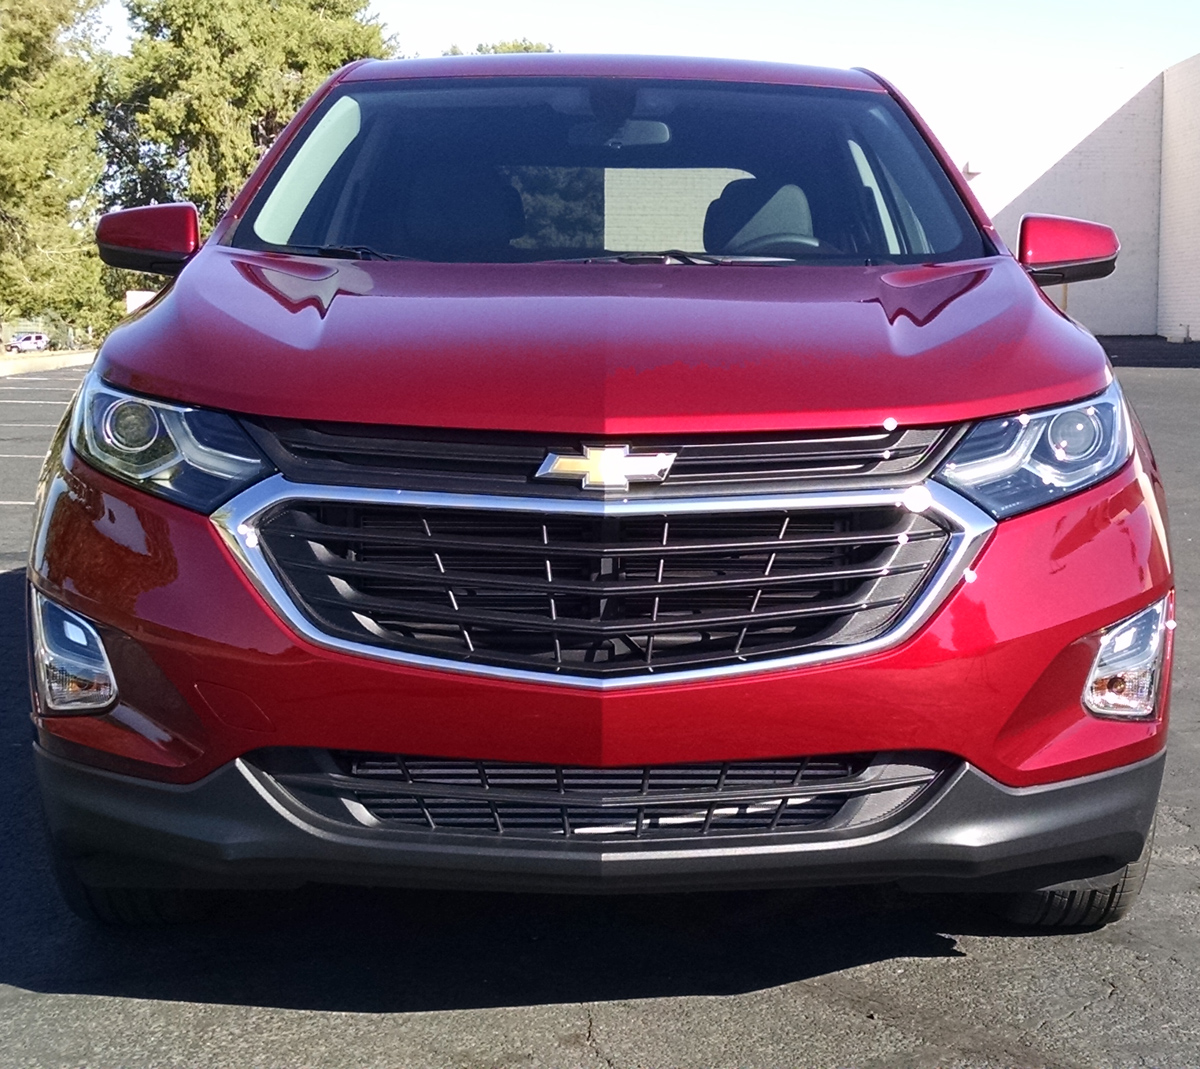 2018 Chevrolet Equinox Suspension: Quick Drive: 2018 Chevrolet Equinox